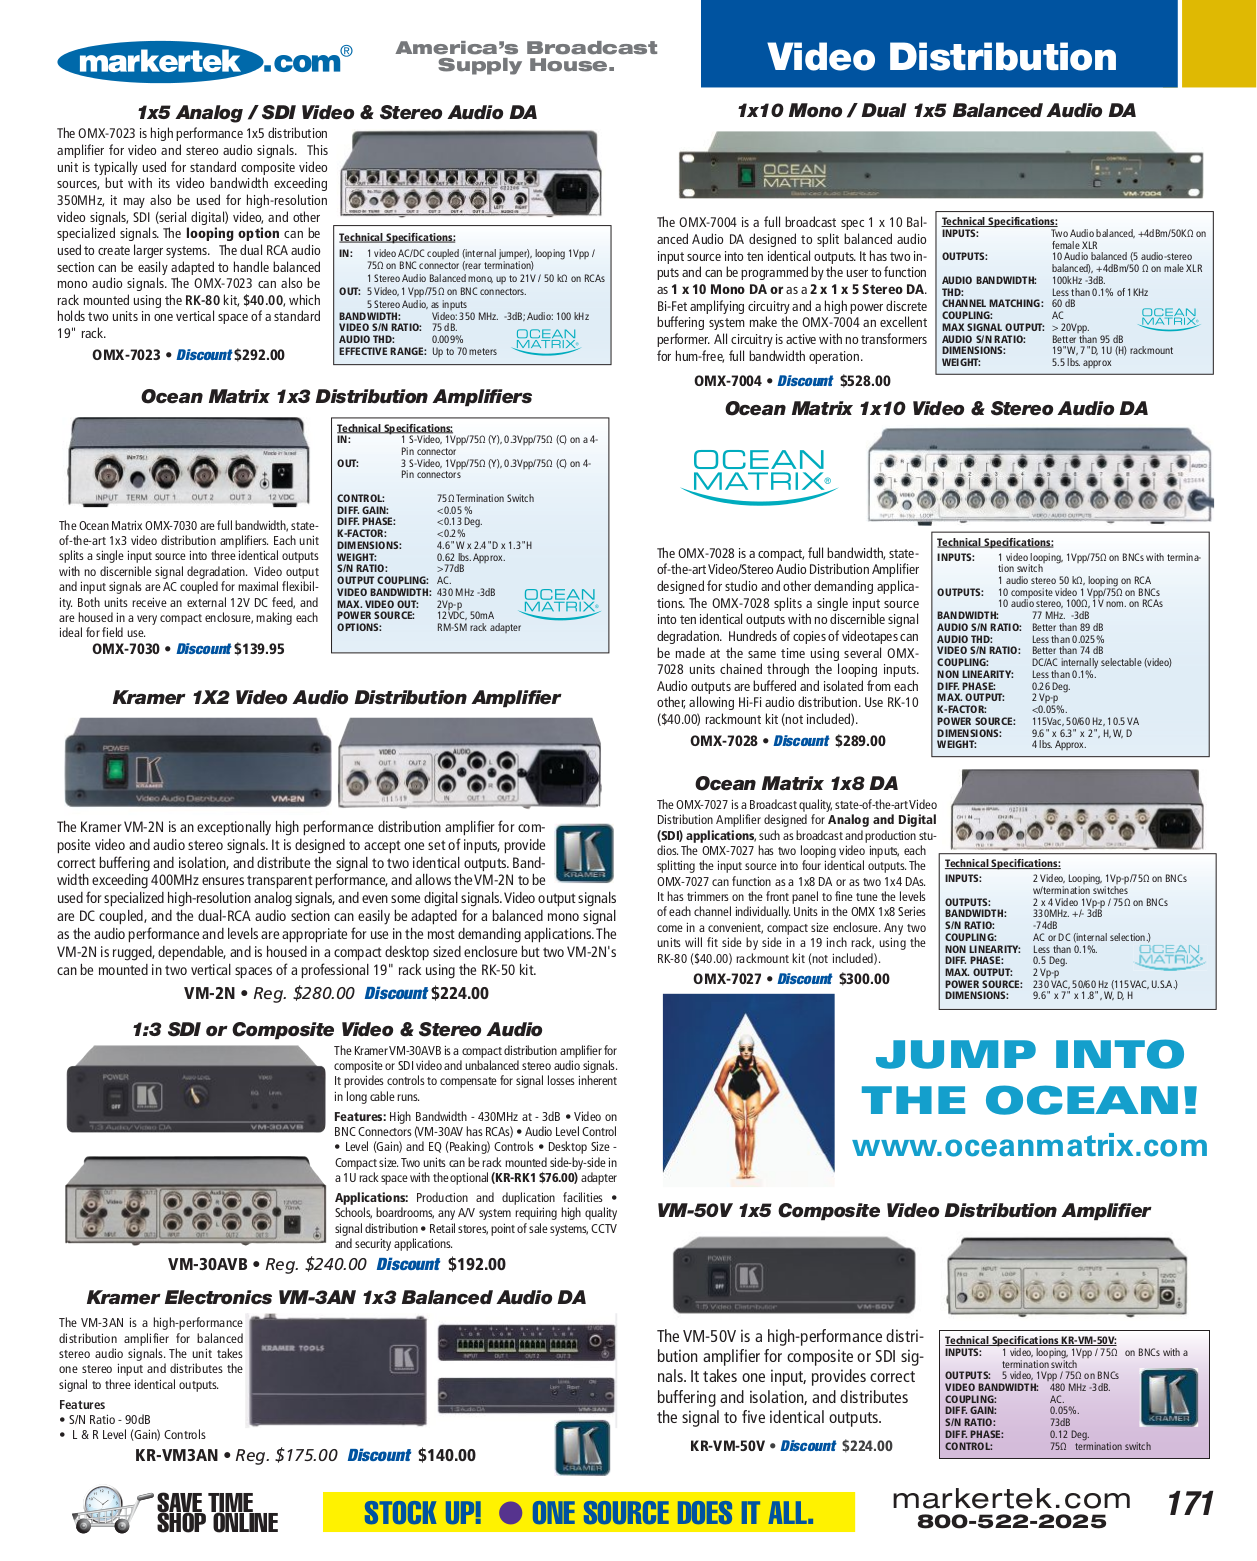 pdf for Kramer Other VM-50V Distribution Amplifiers manual